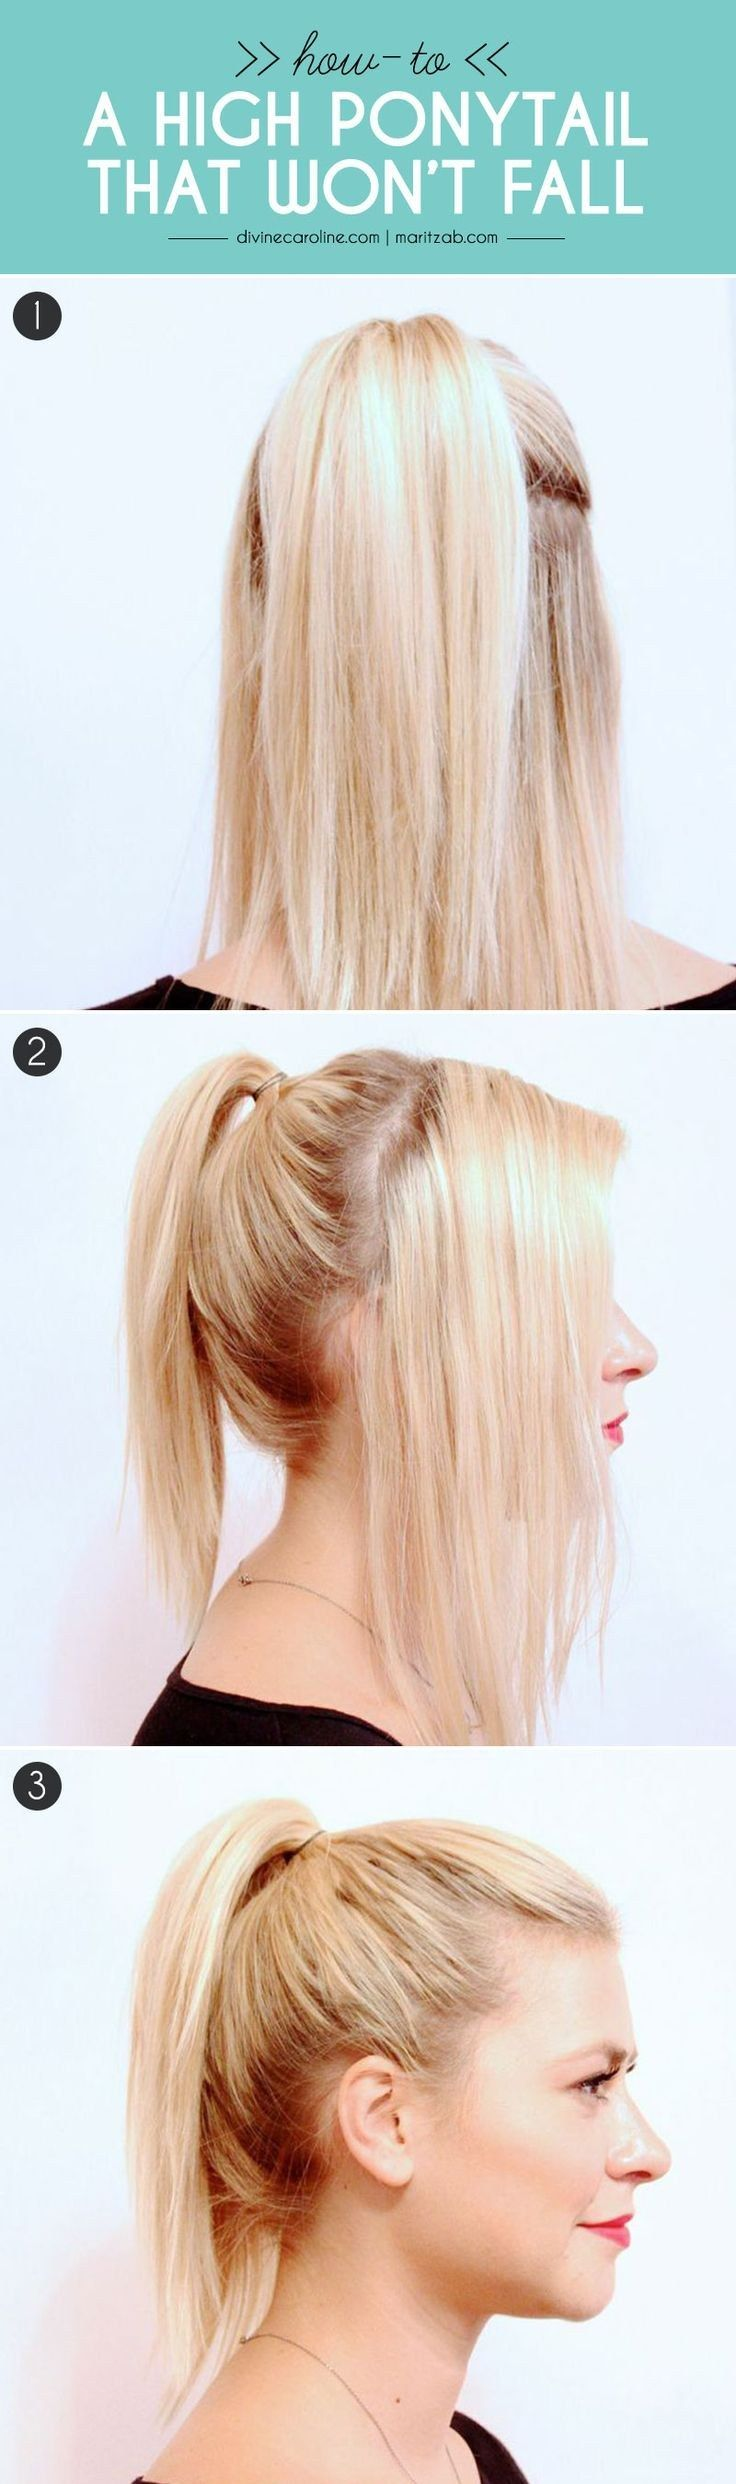 tips and tricks to get the perfect ponytail donna pinterest